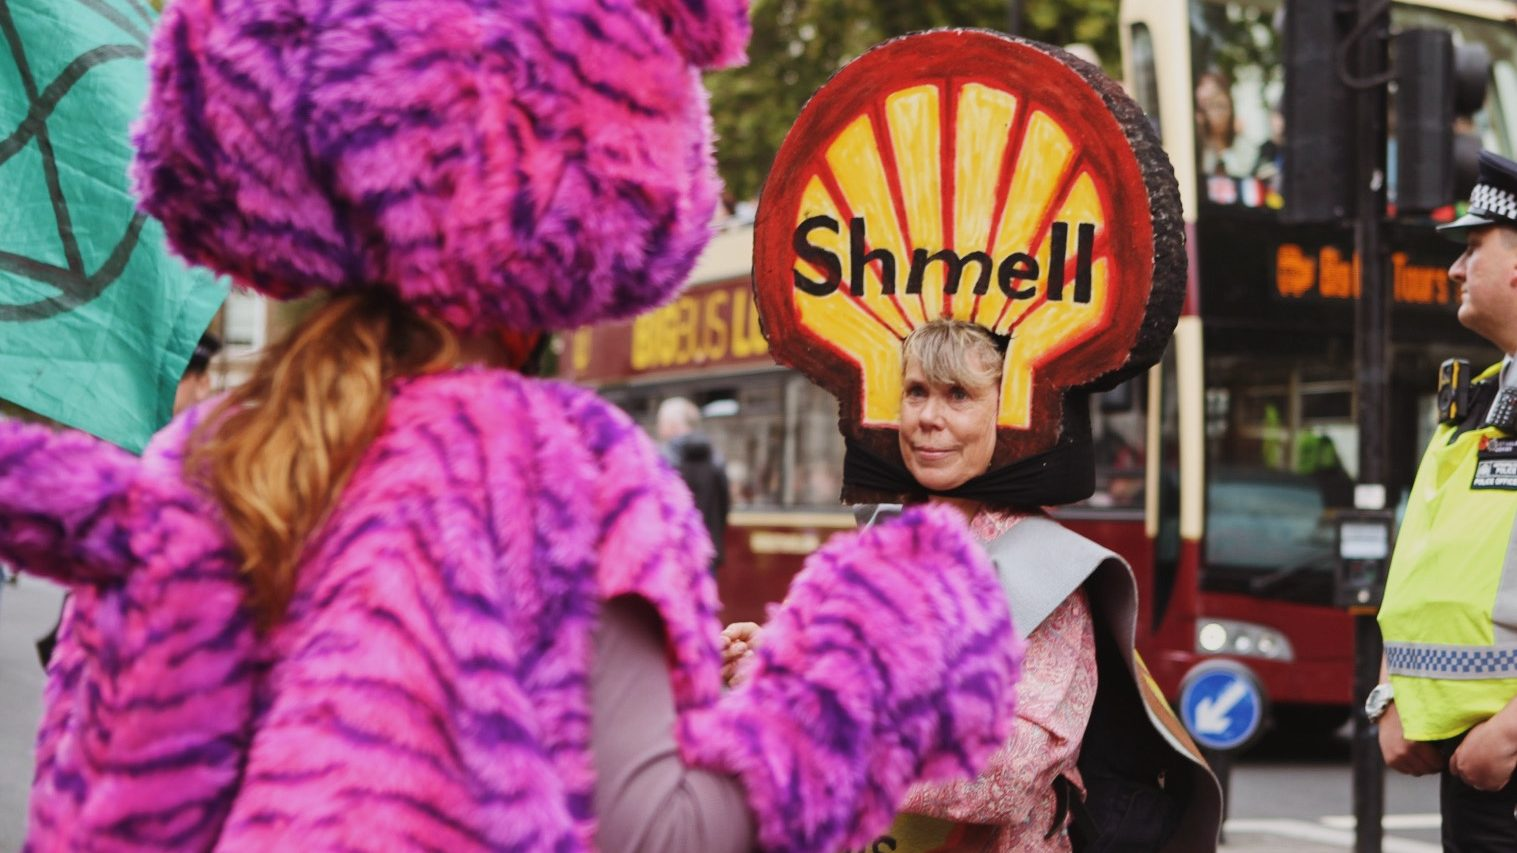 XR protesting the Science Museum's ongoing Shell sponsorship last weekend